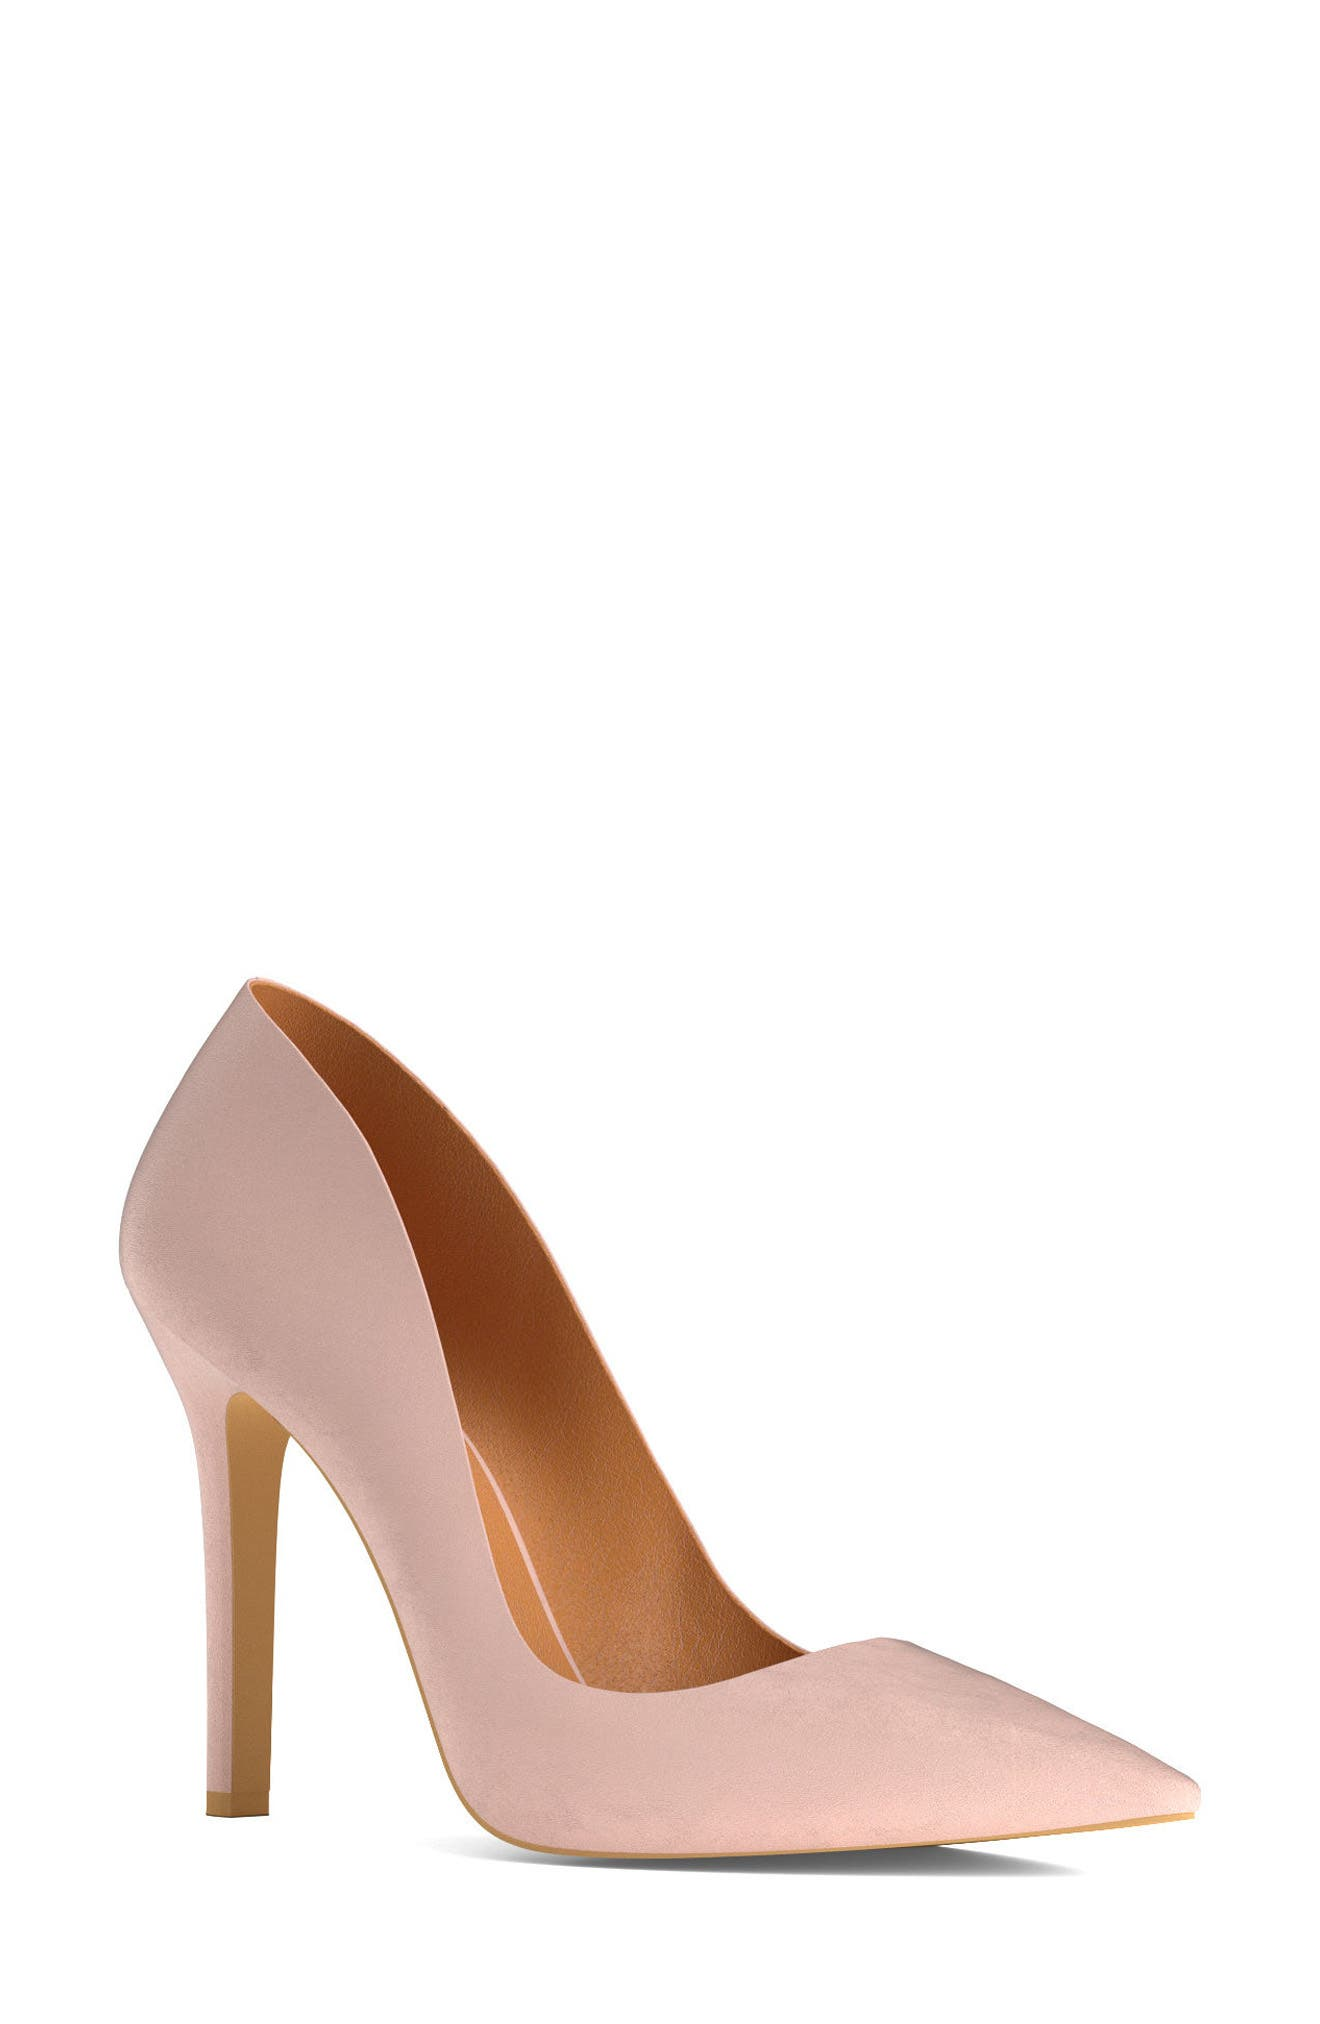 Pointy Toe Pump,                         Main,                         color, 651